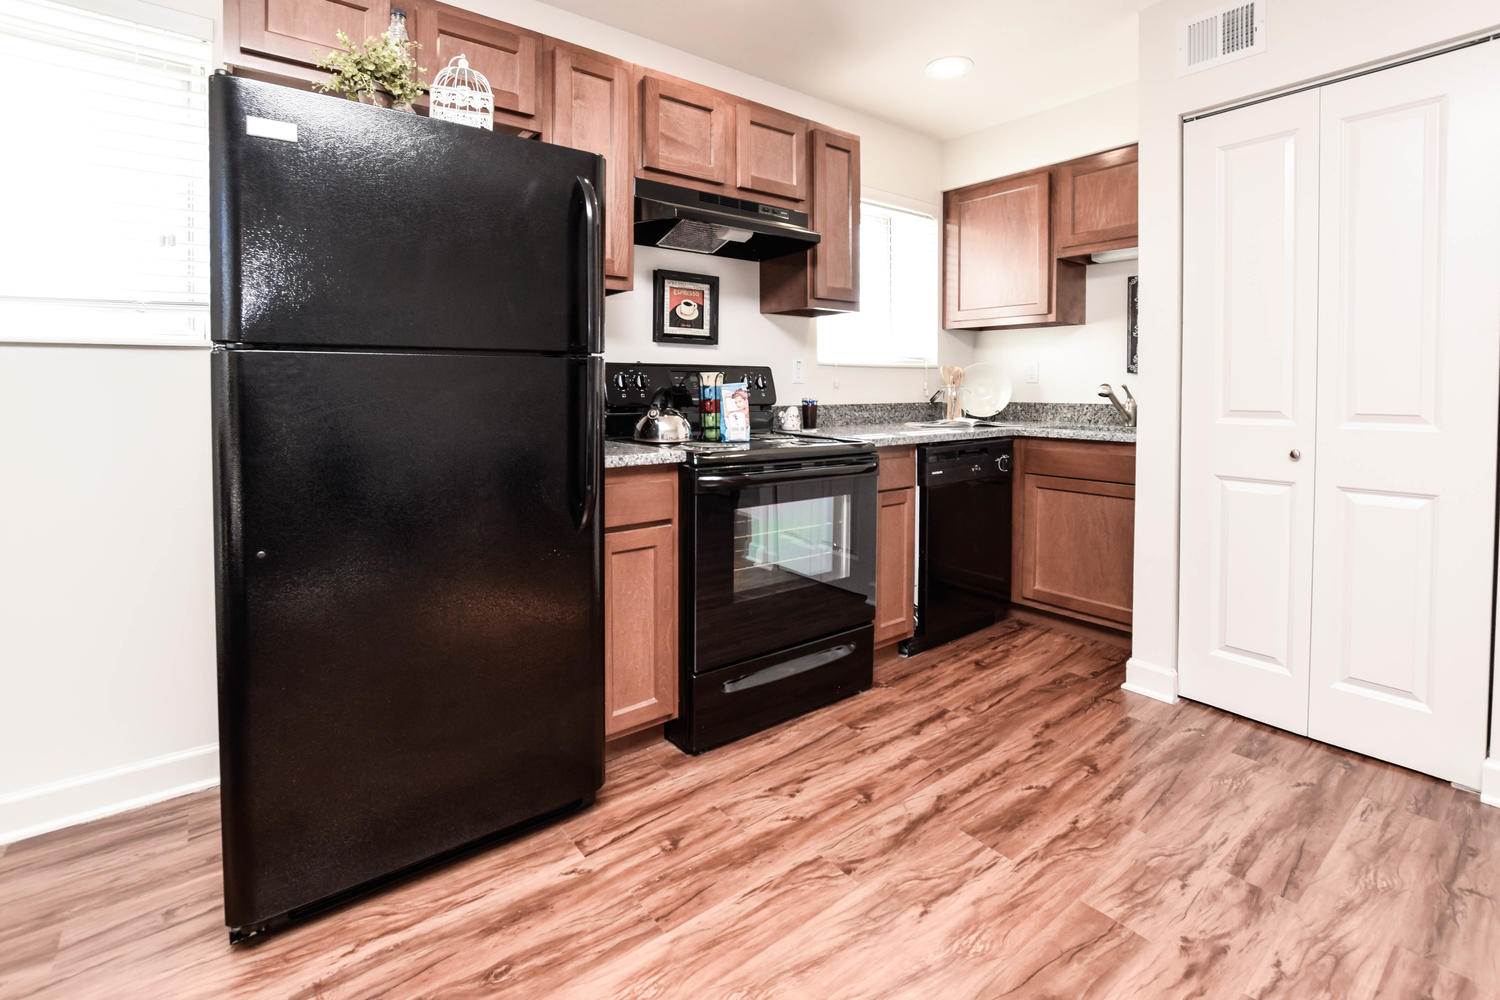 1091-raritan-kitchen-2